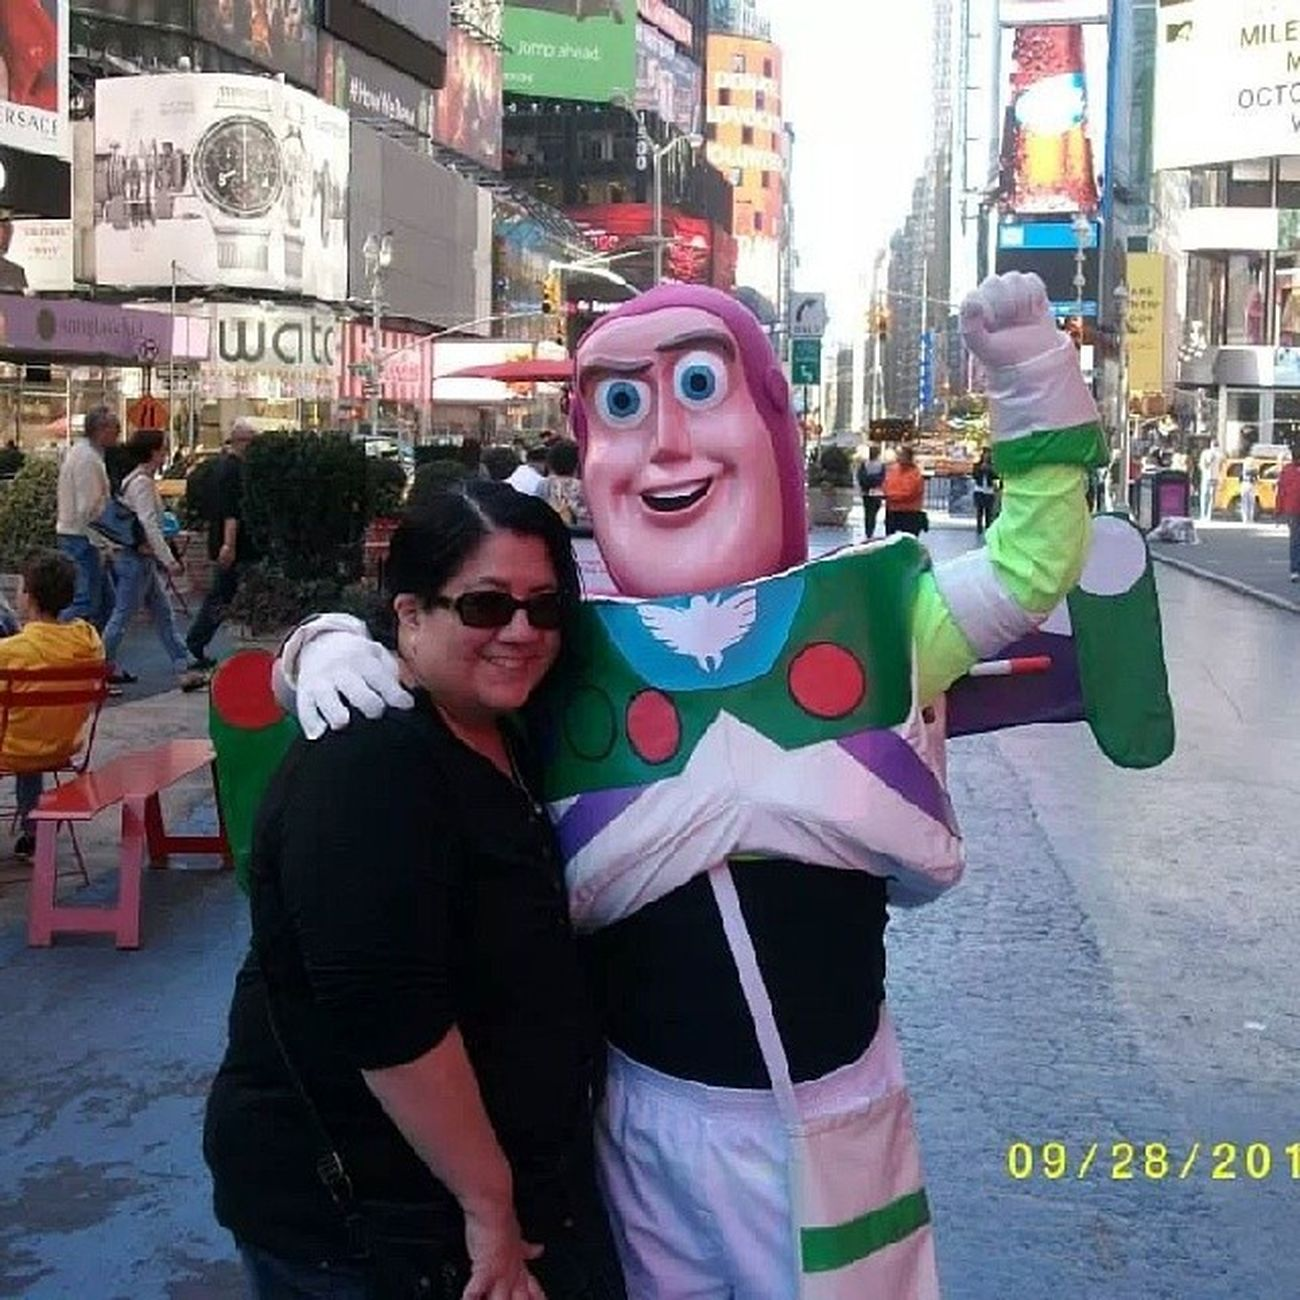 Me in times square in my favorite city! Lovenewyork Timesquare Vacation Buzzlightyear toystory newyorkcity nyc nycfeelings nycgazers newyorkfinest bigcity love Manhattan